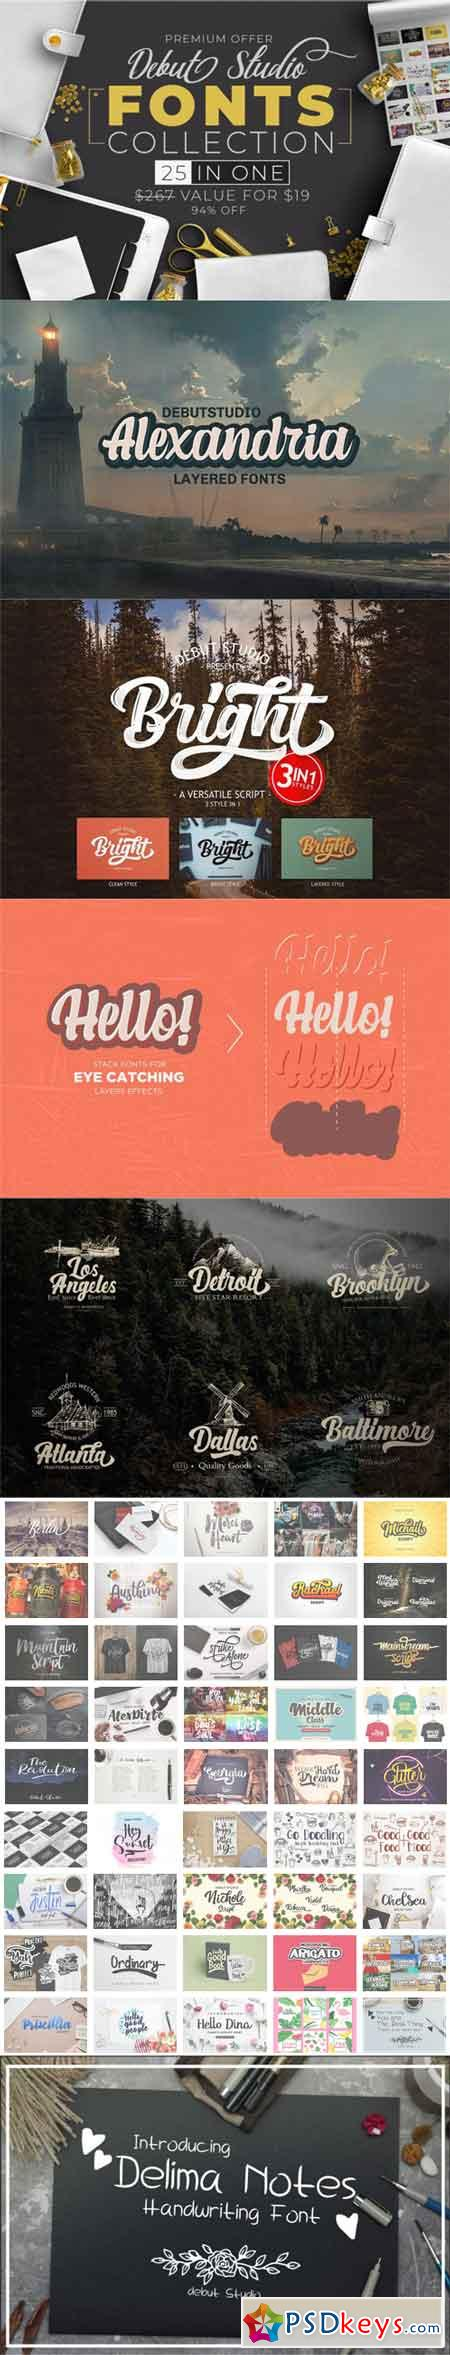 Debut Studio FONTS COLLECTION (25 in 1) 3515303